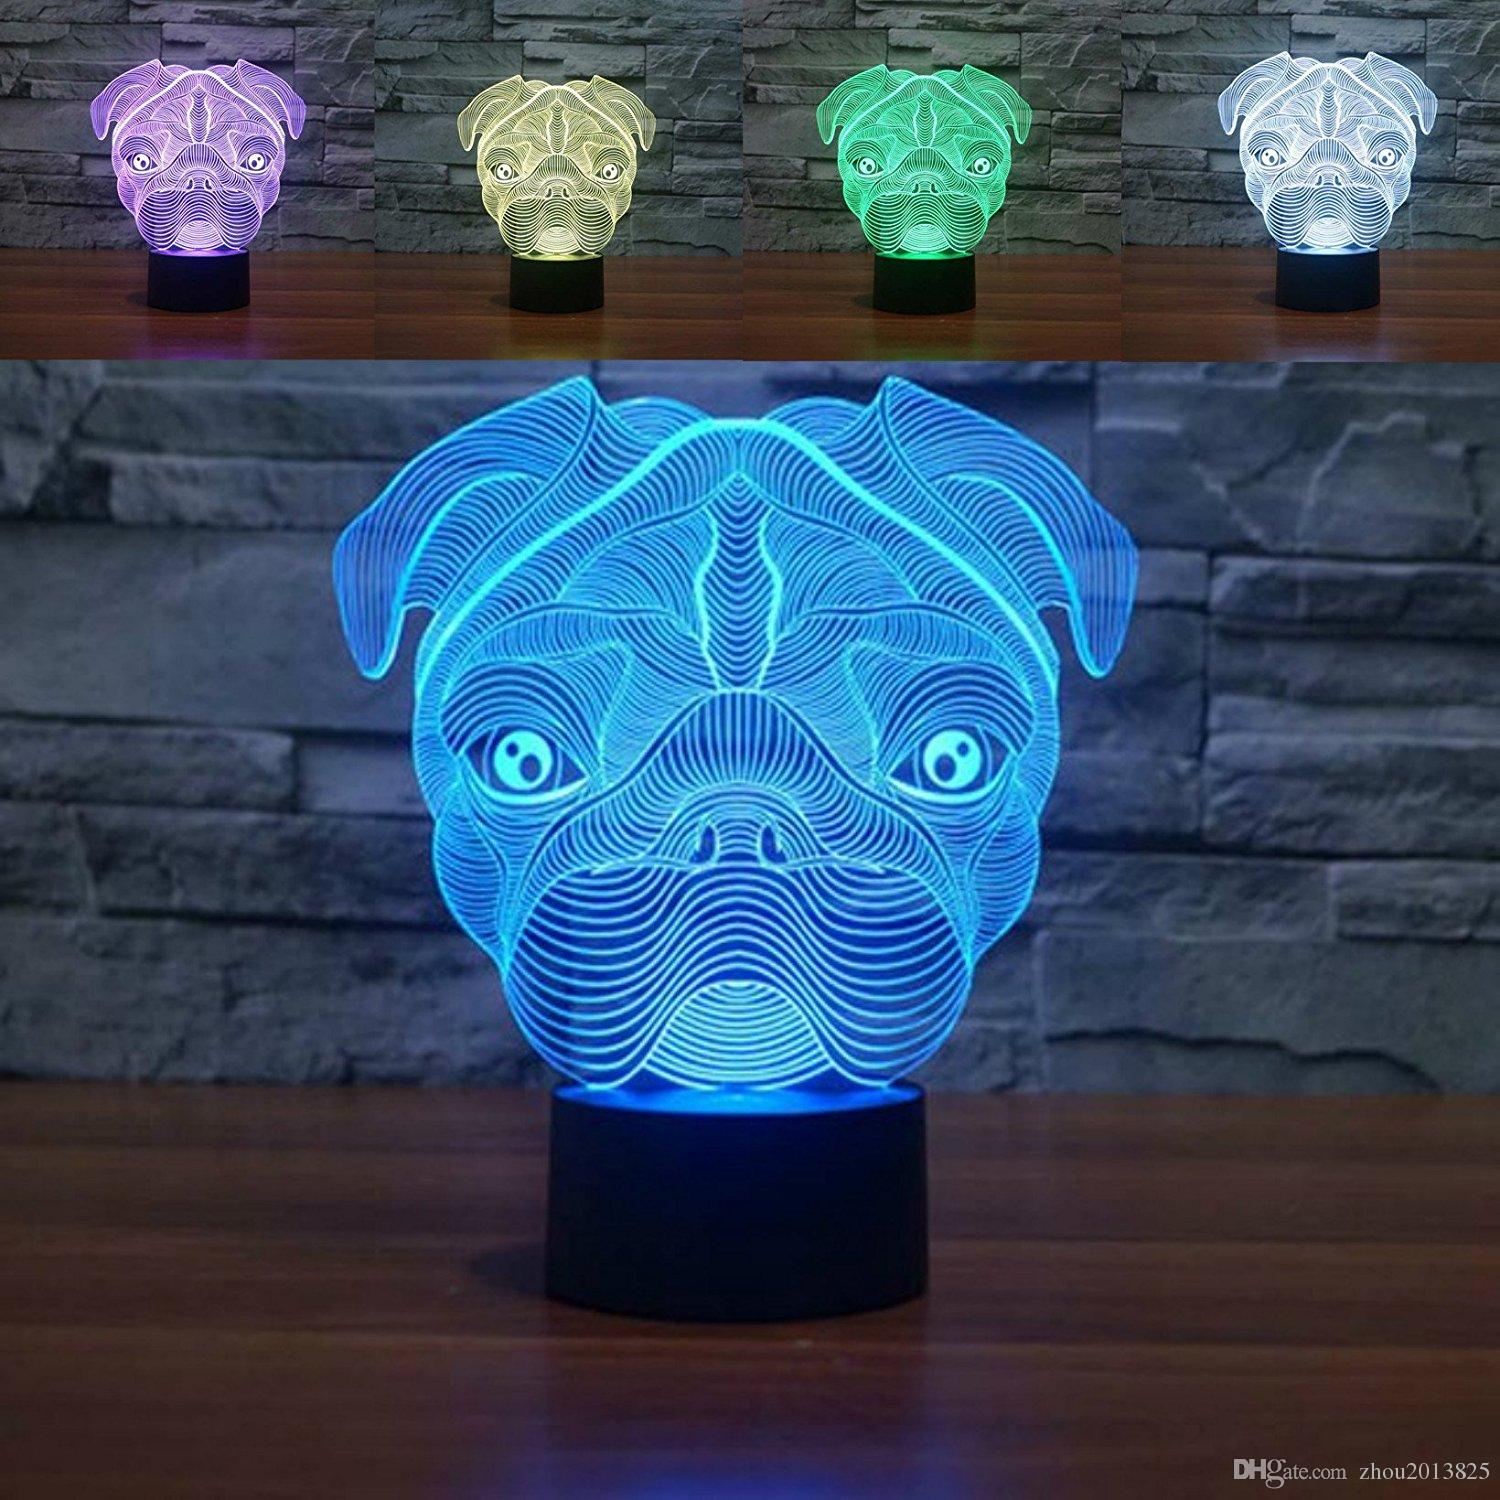 Cute Pug Dog Night Light Baby Animal Led Lights Table Lamps For Home Decor  Promotional Gifts For Kids Touch Table Lamp 3d Kids Night Lamp 3d Night  Table ...